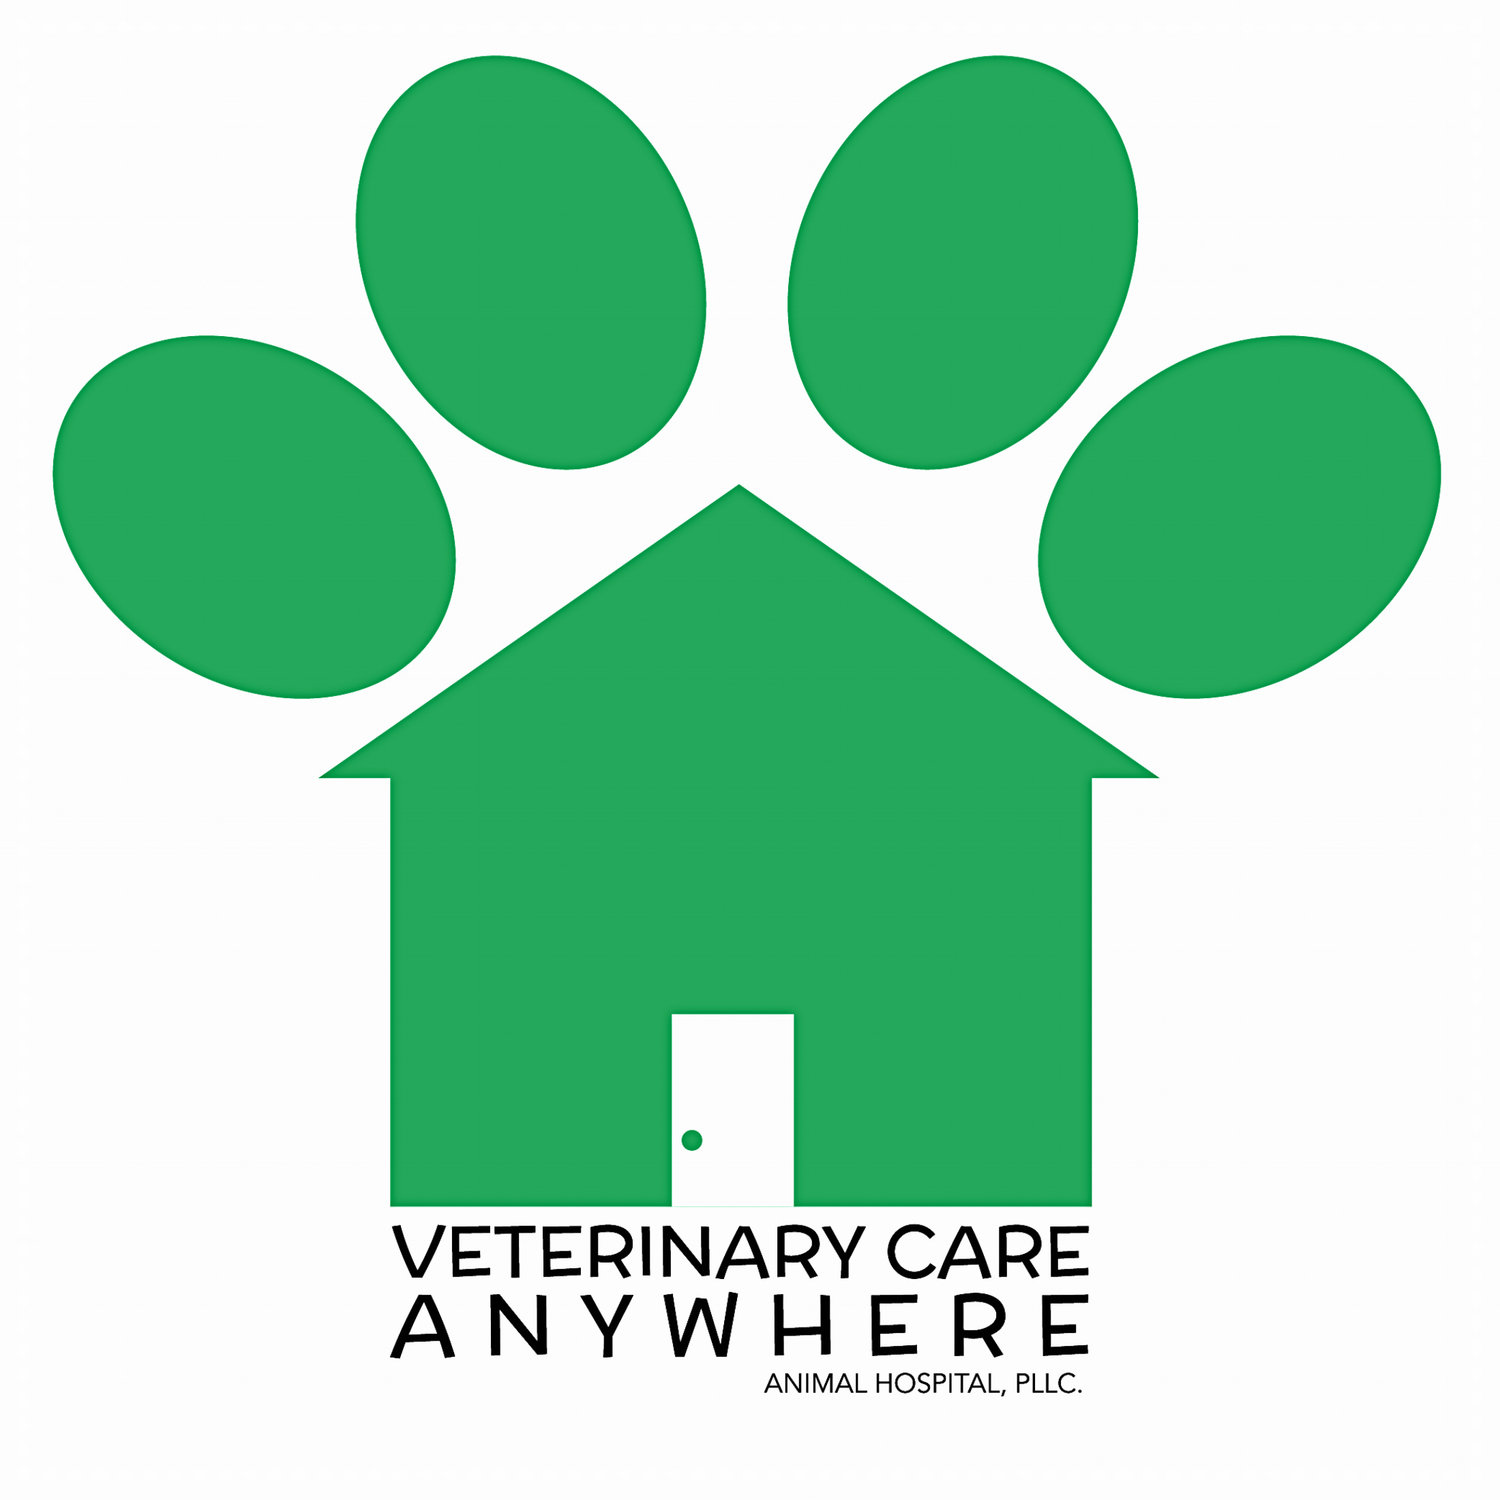 Veterinarian Animal Pet Services Clinic Hospital Raleigh Capital Blvd Nearby Vet Community